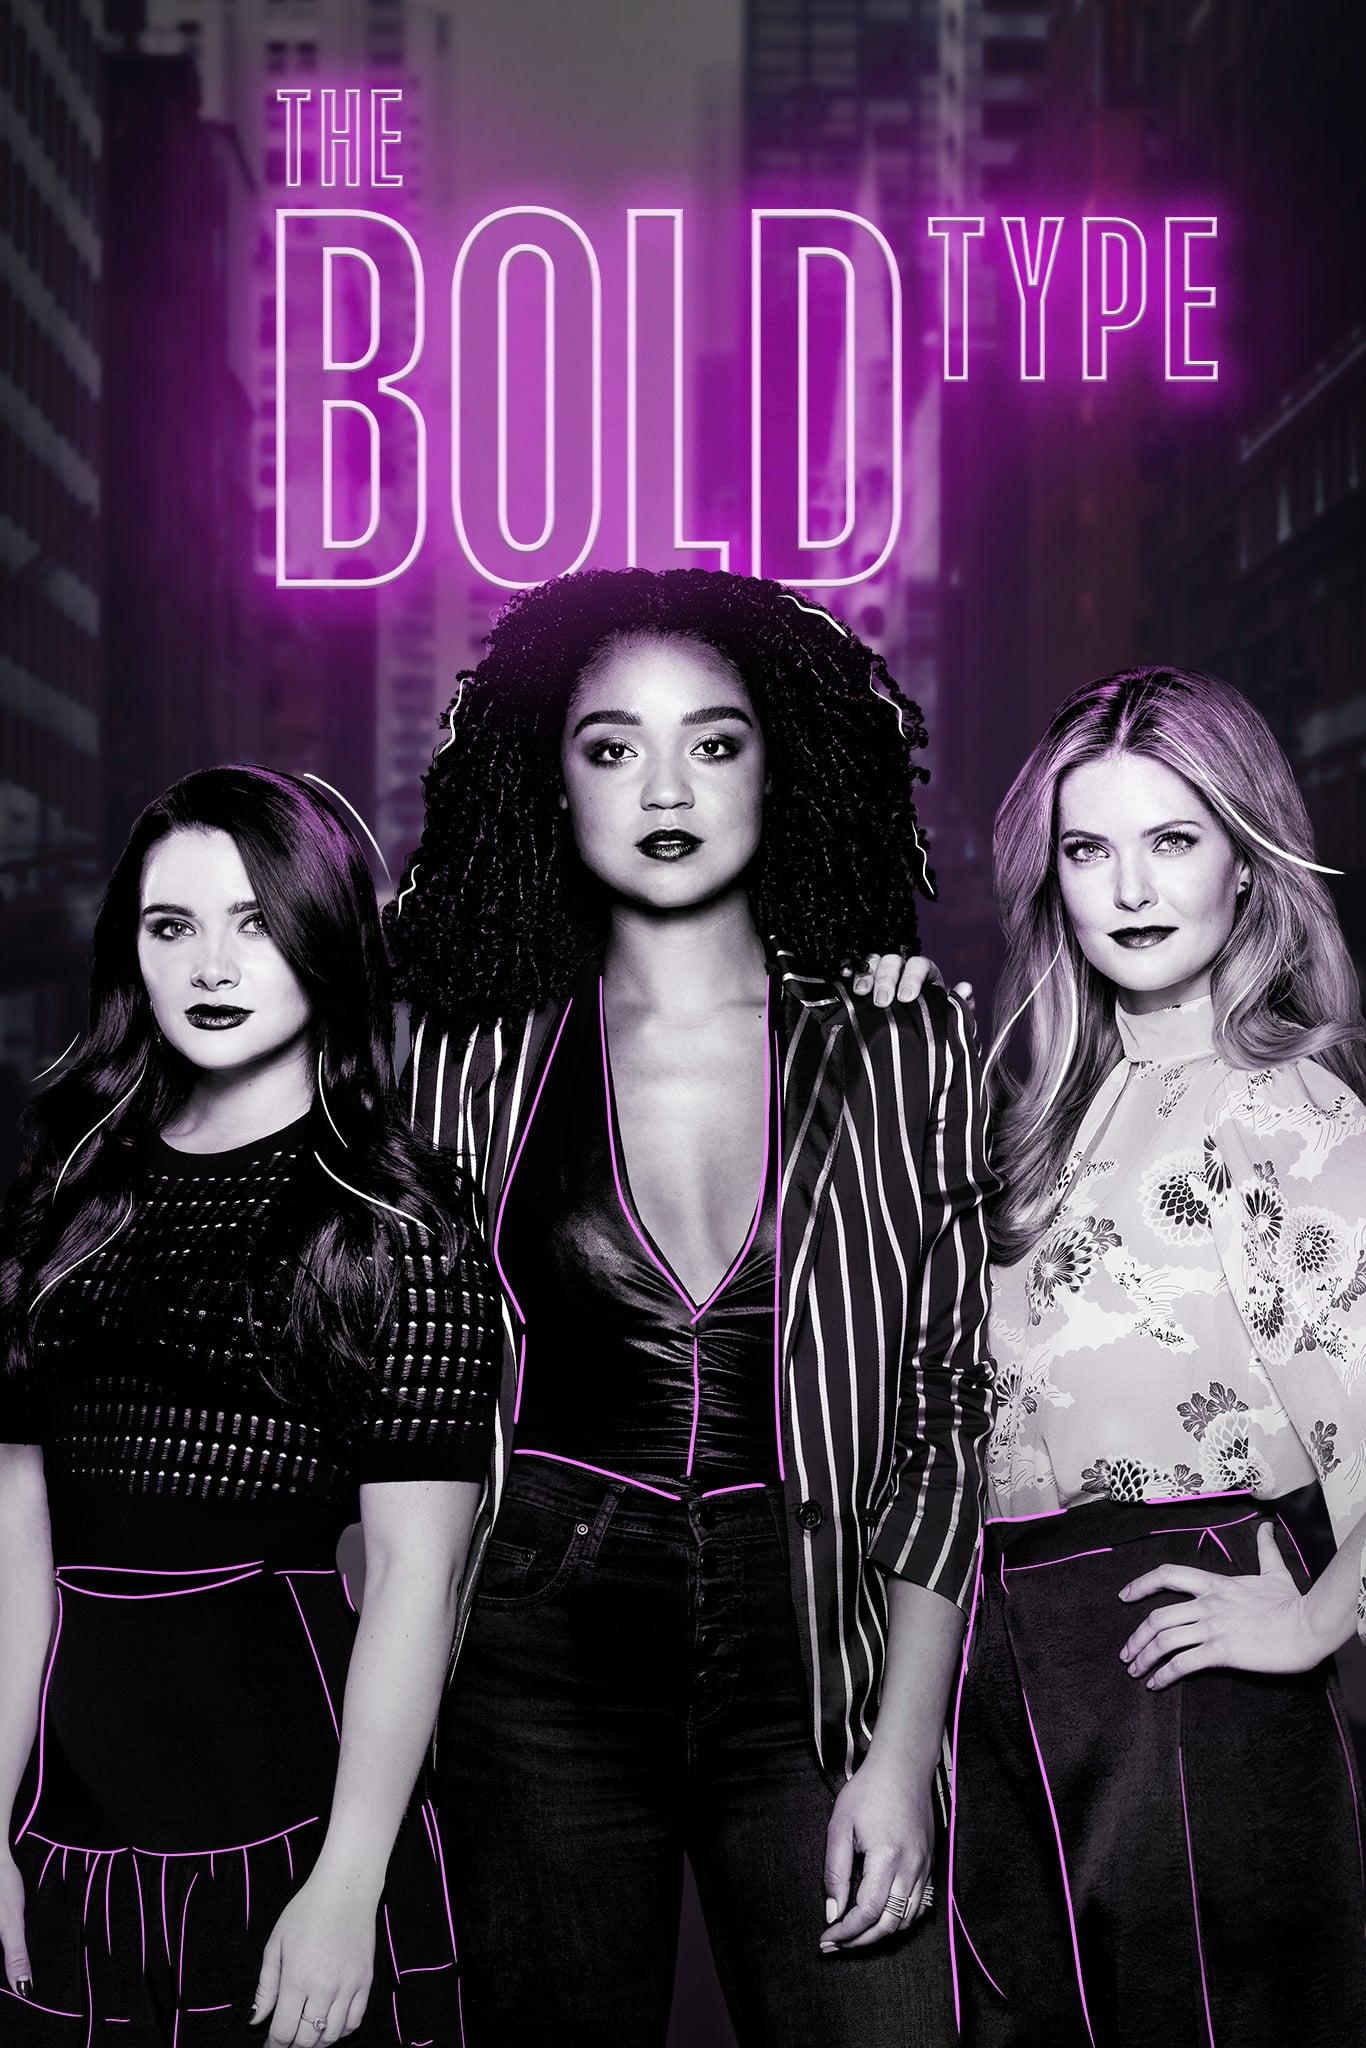 The Bold Type movie poster